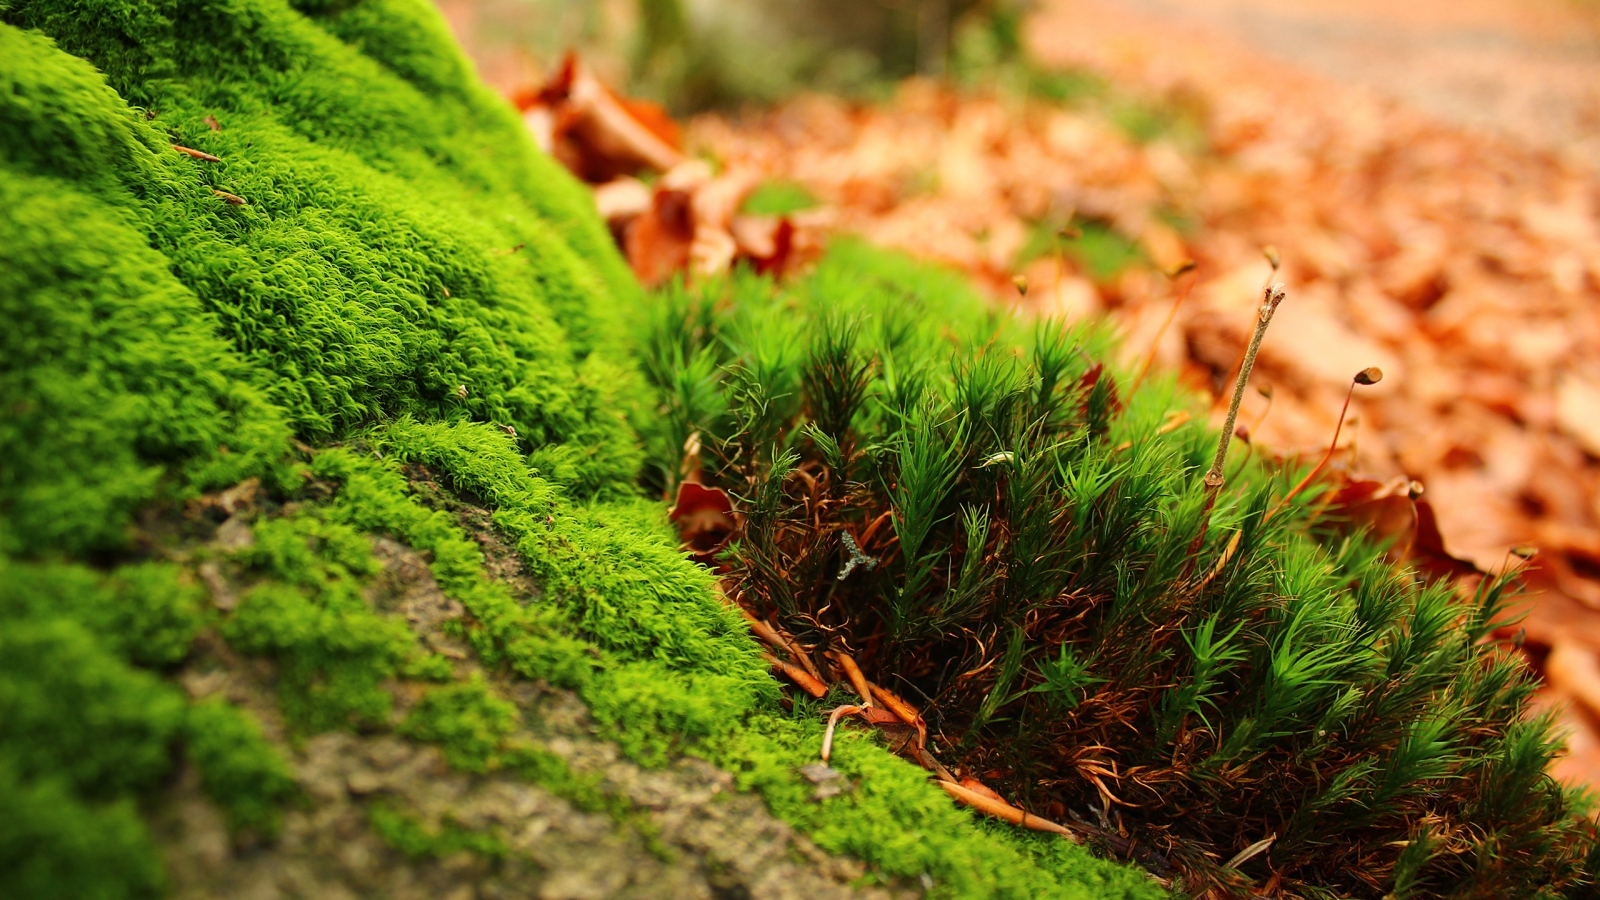 Amazing Moss for 1600 x 900 HDTV resolution